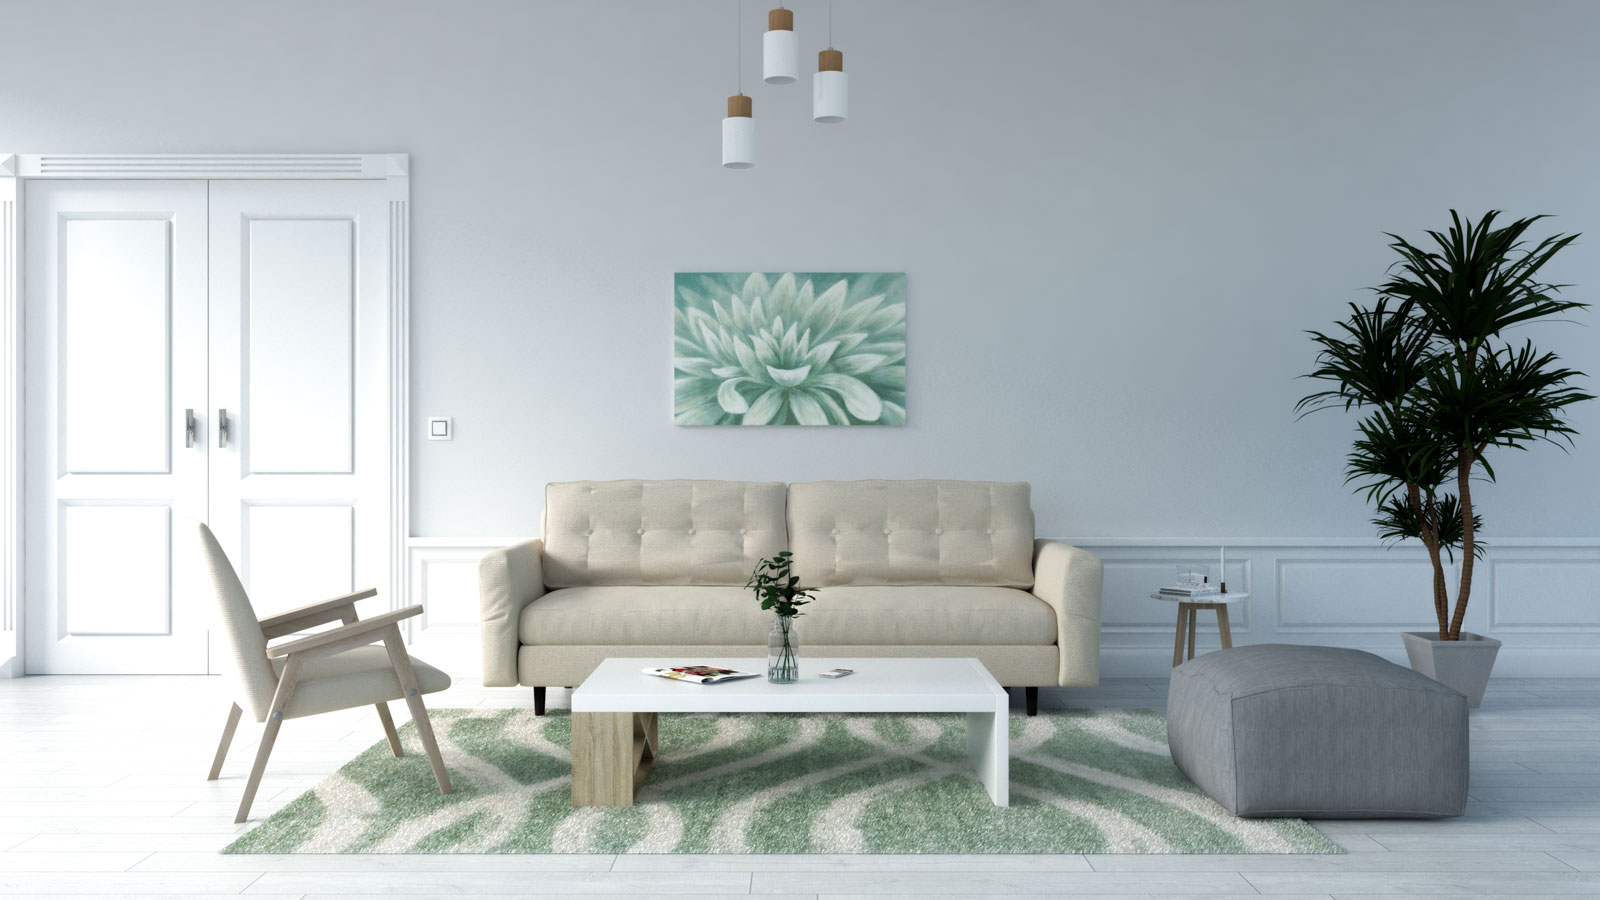 Green and cream rug with beige couch